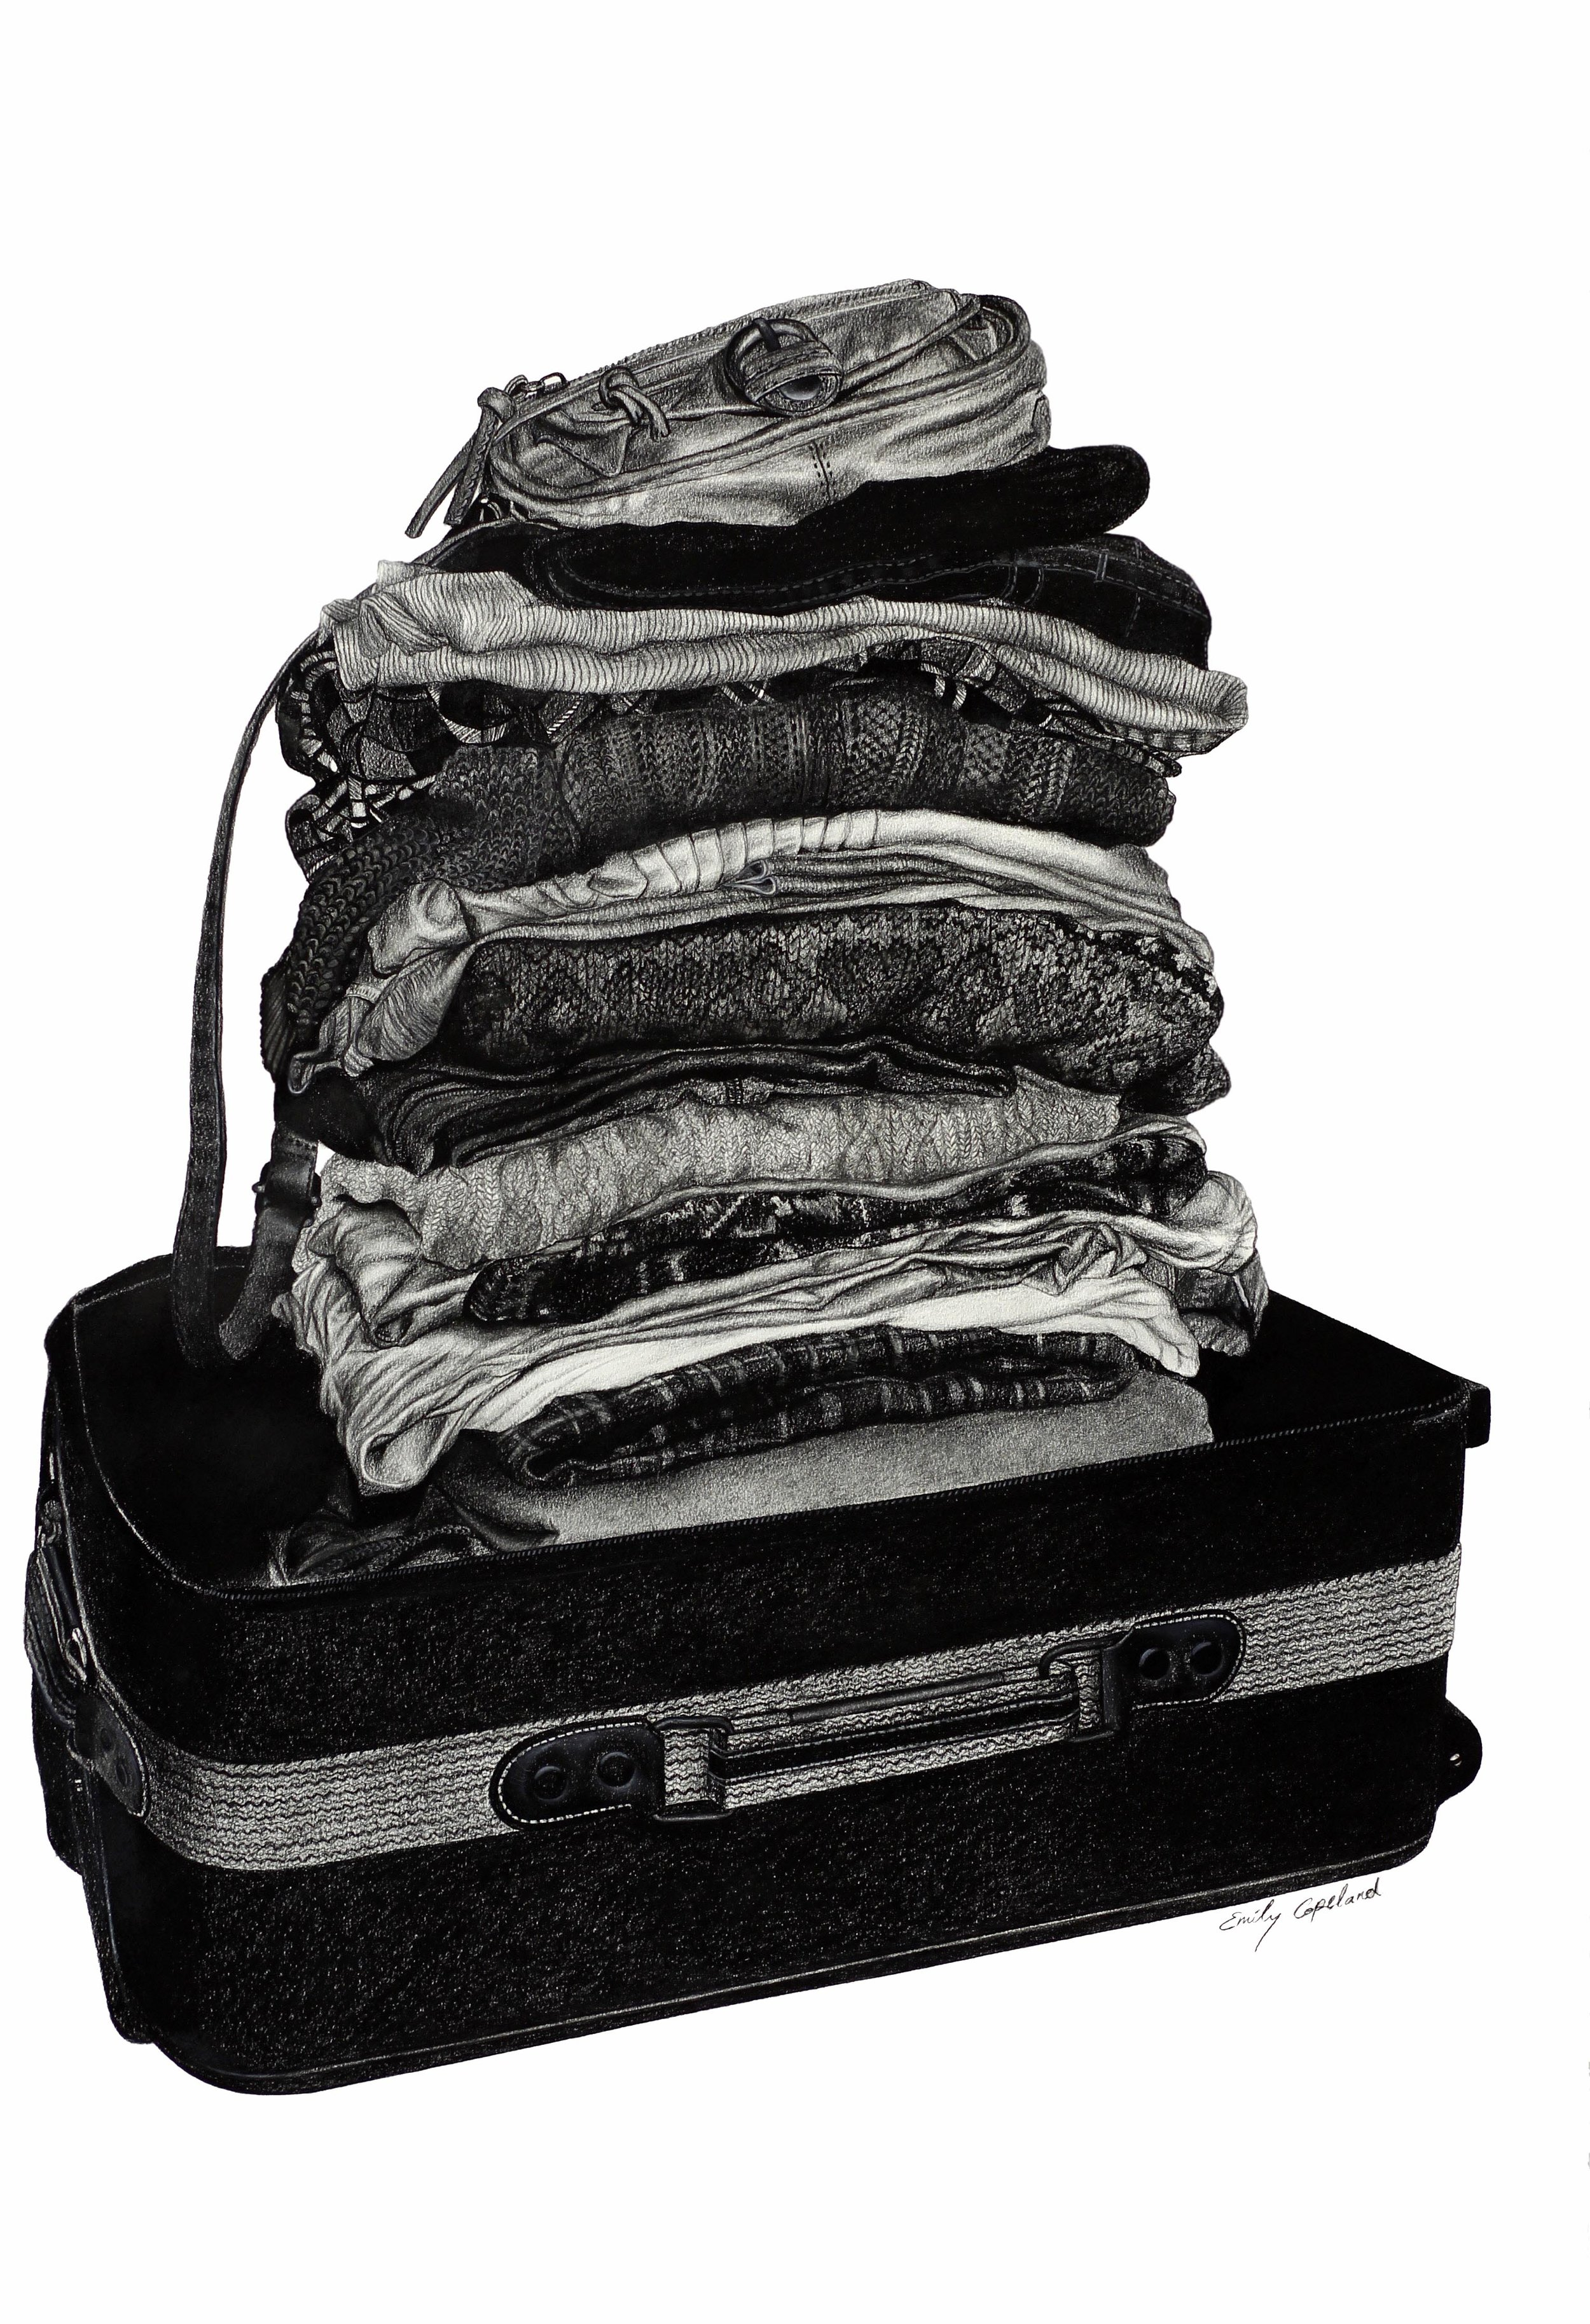 Charcoal Drawing of a Stack of Clothes